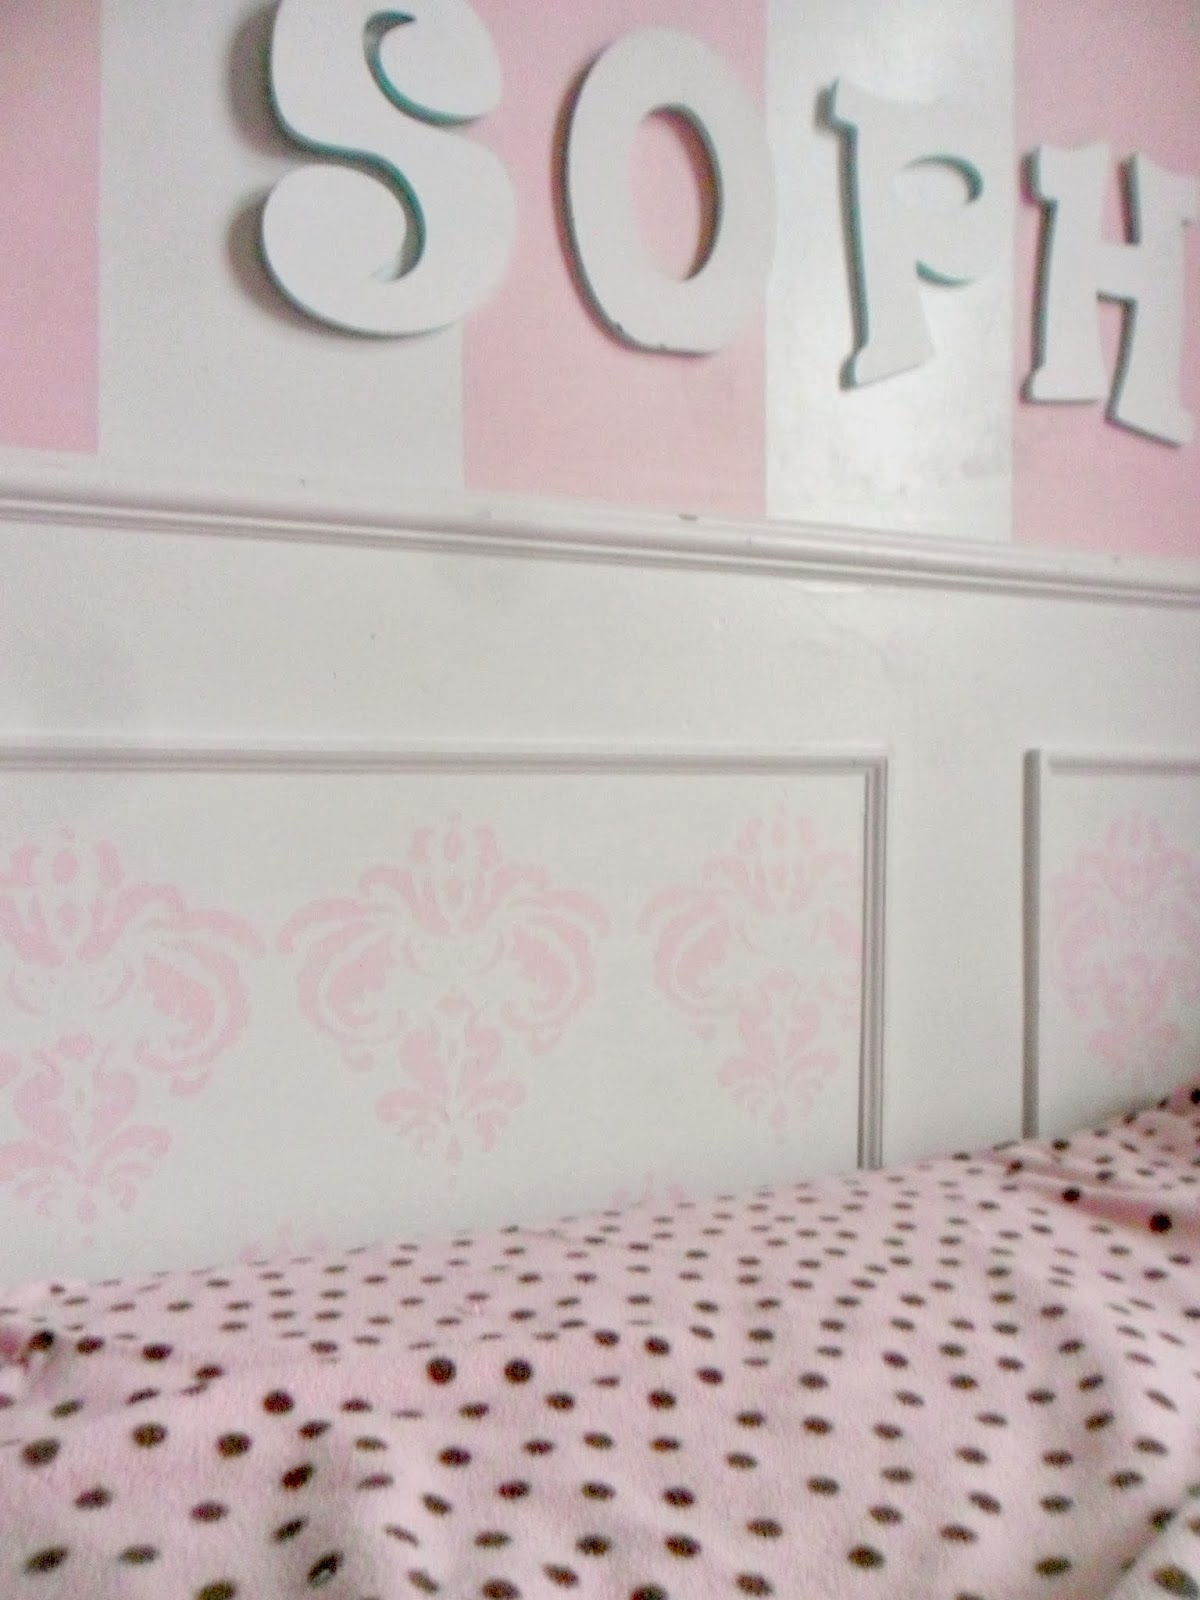 Home heart and hands diy damask stencil for little girls room diy damask stencil for little girls room amipublicfo Images